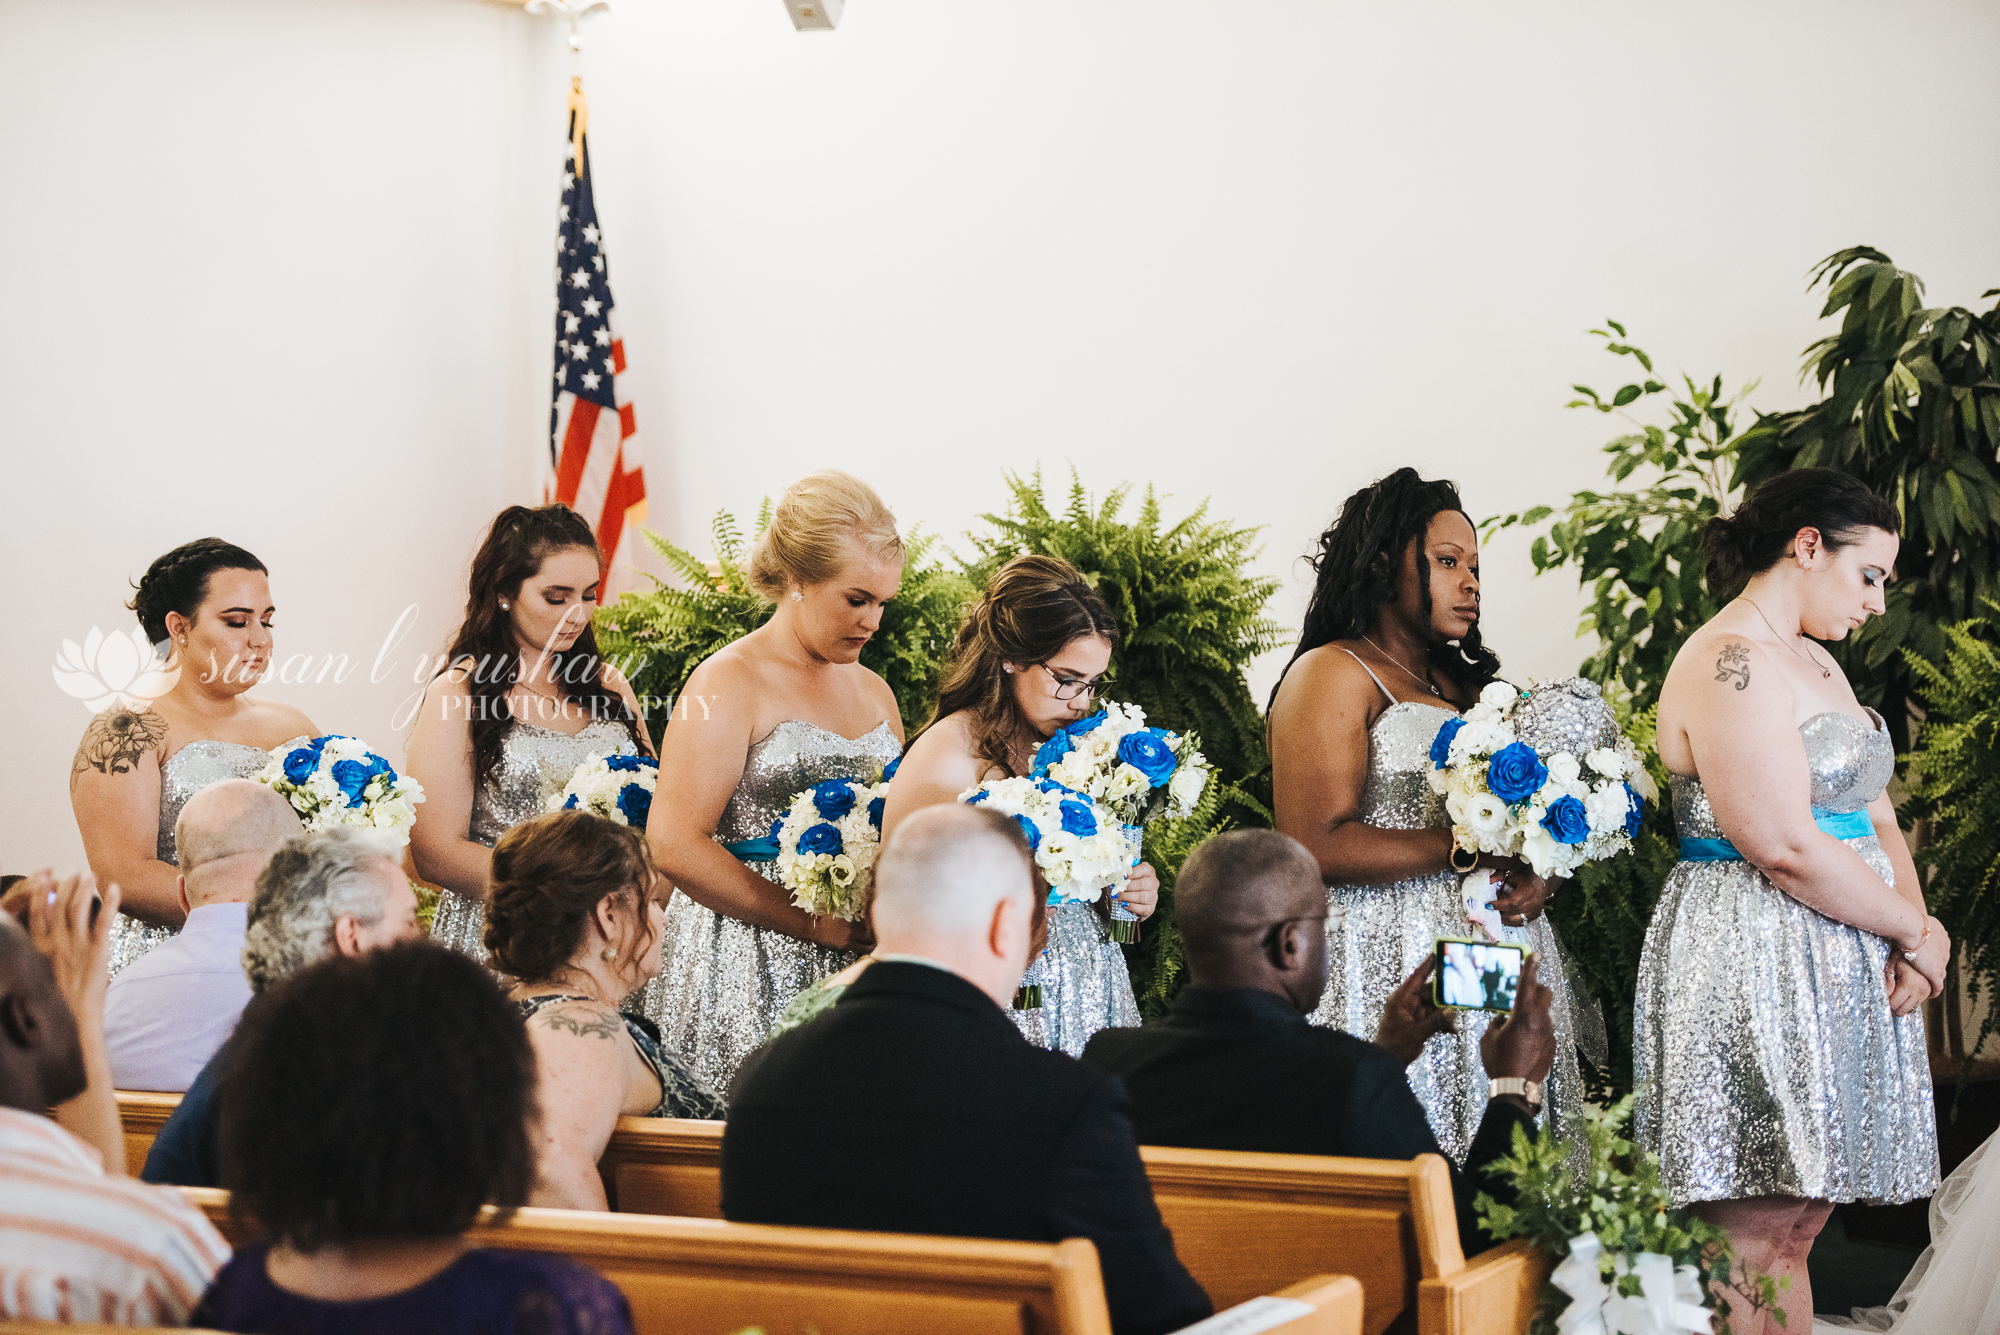 Katelyn and Wes Wedding Photos 07-13-2019 SLY Photography-63.jpg